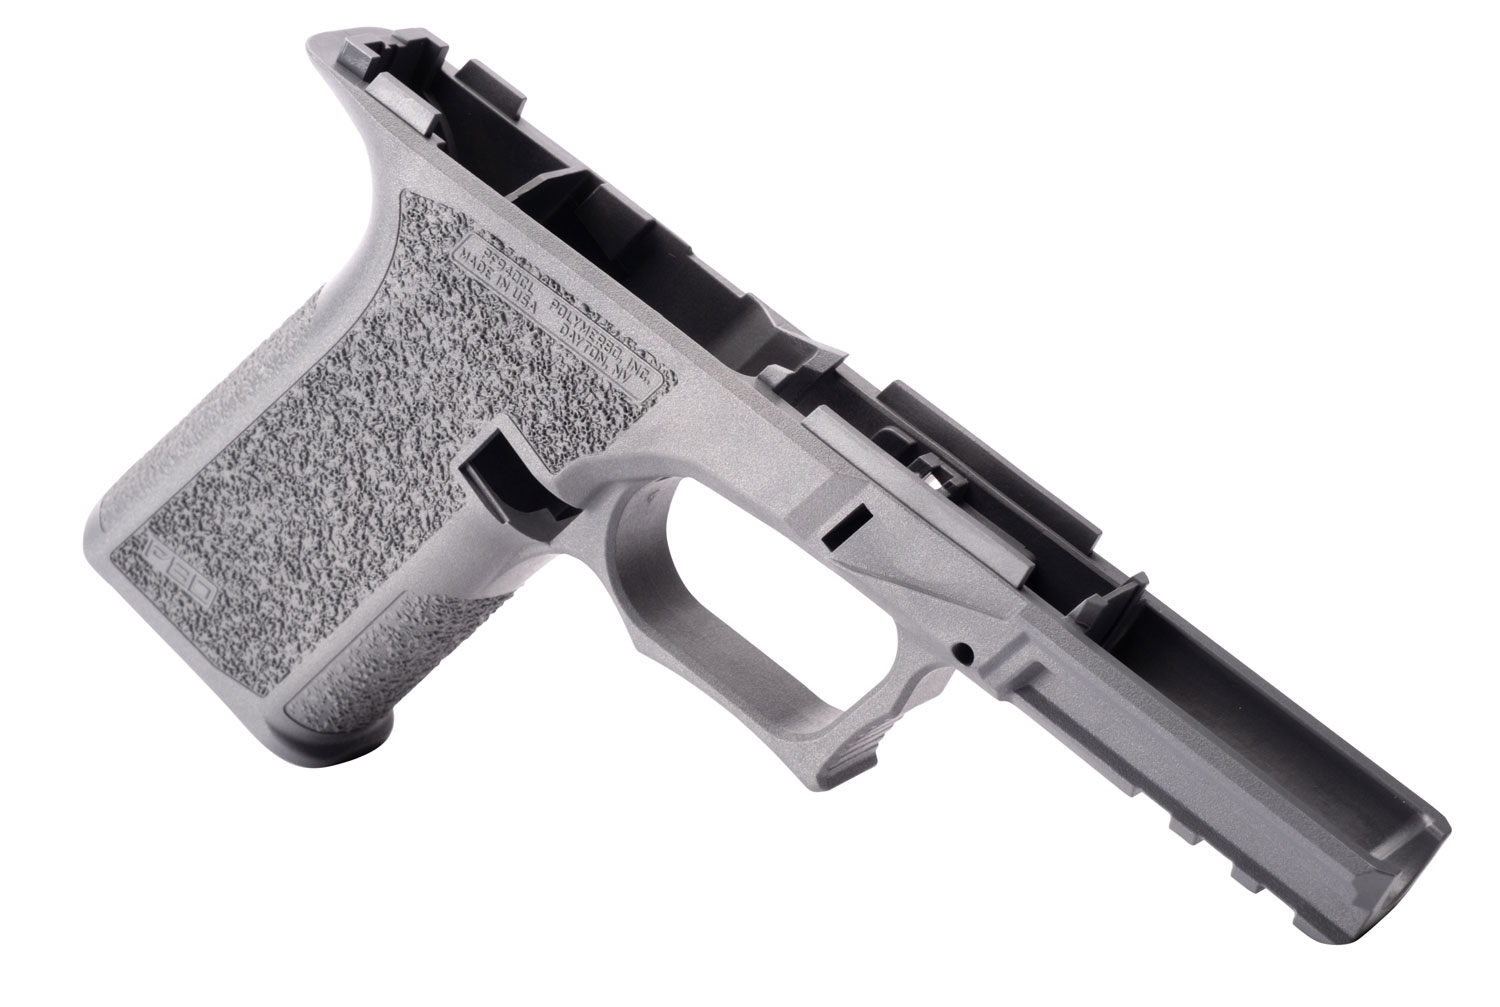 Polymer80 PF940CL Compact Long Slide Glock 17 Polymer Gray